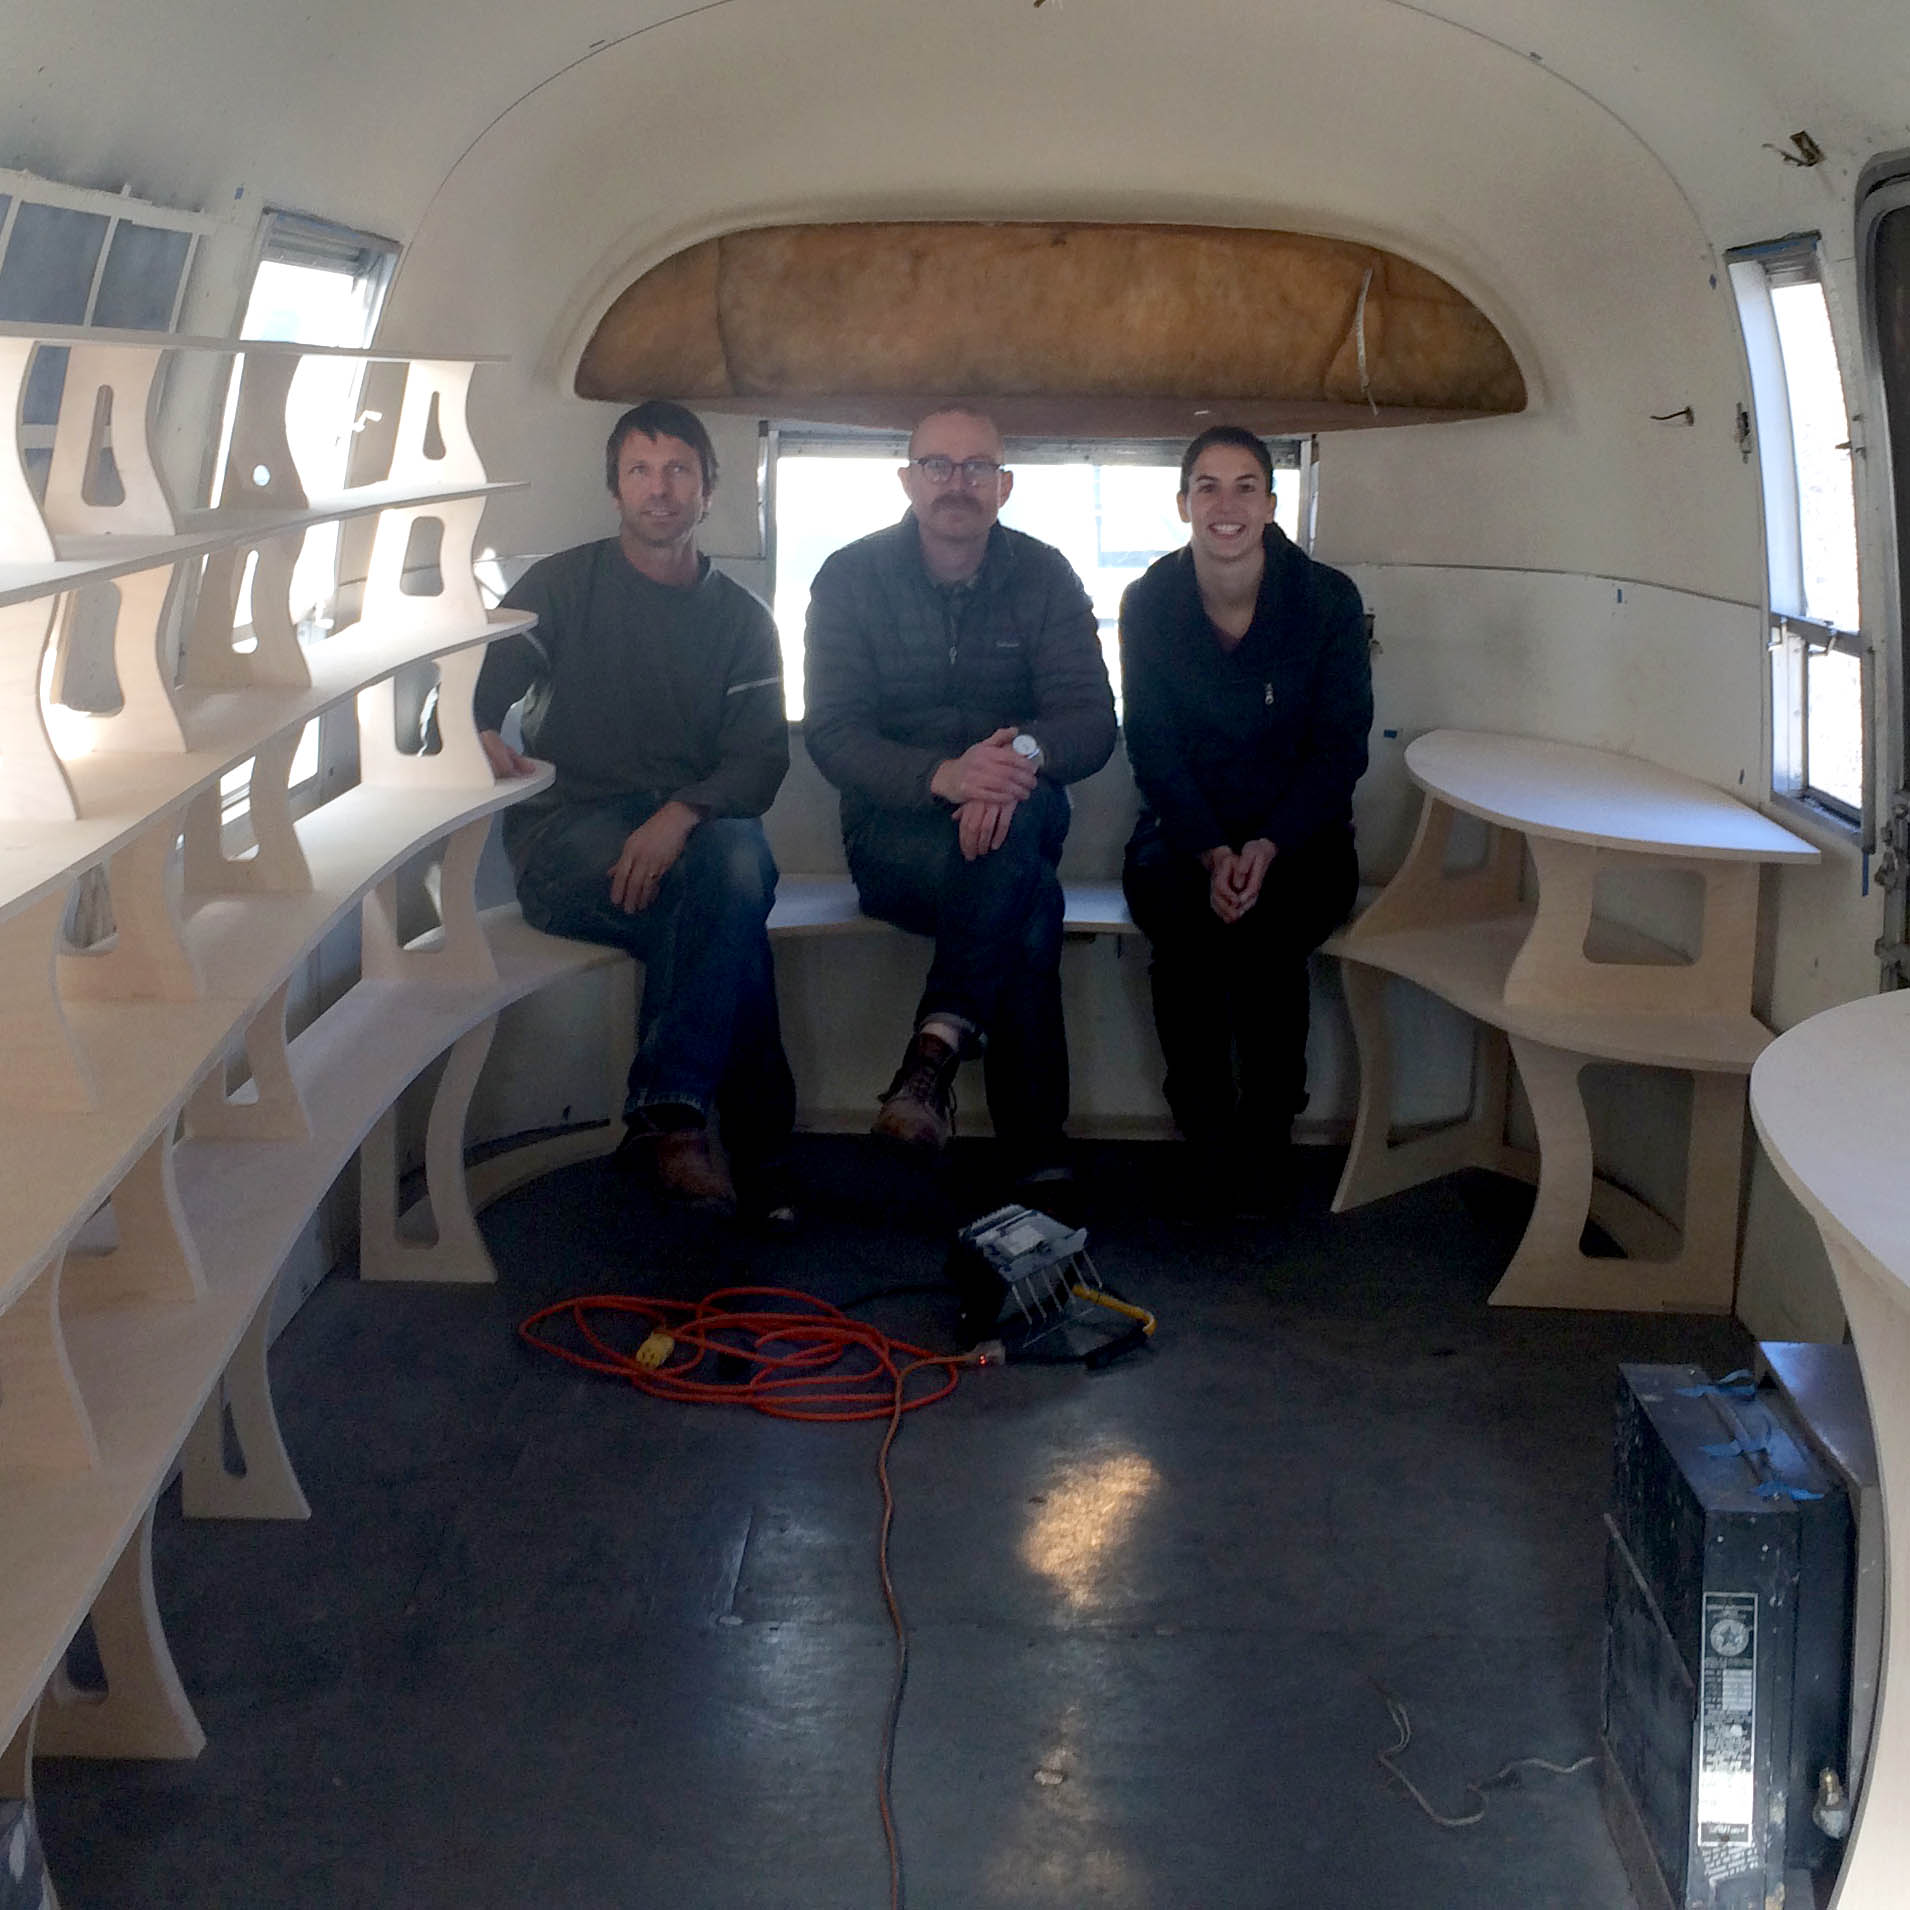 L to R: Alleghany Meadows, Del Harrow, and Camila Friedman-Gerlicz inside the Artstream 2.0 during construction.